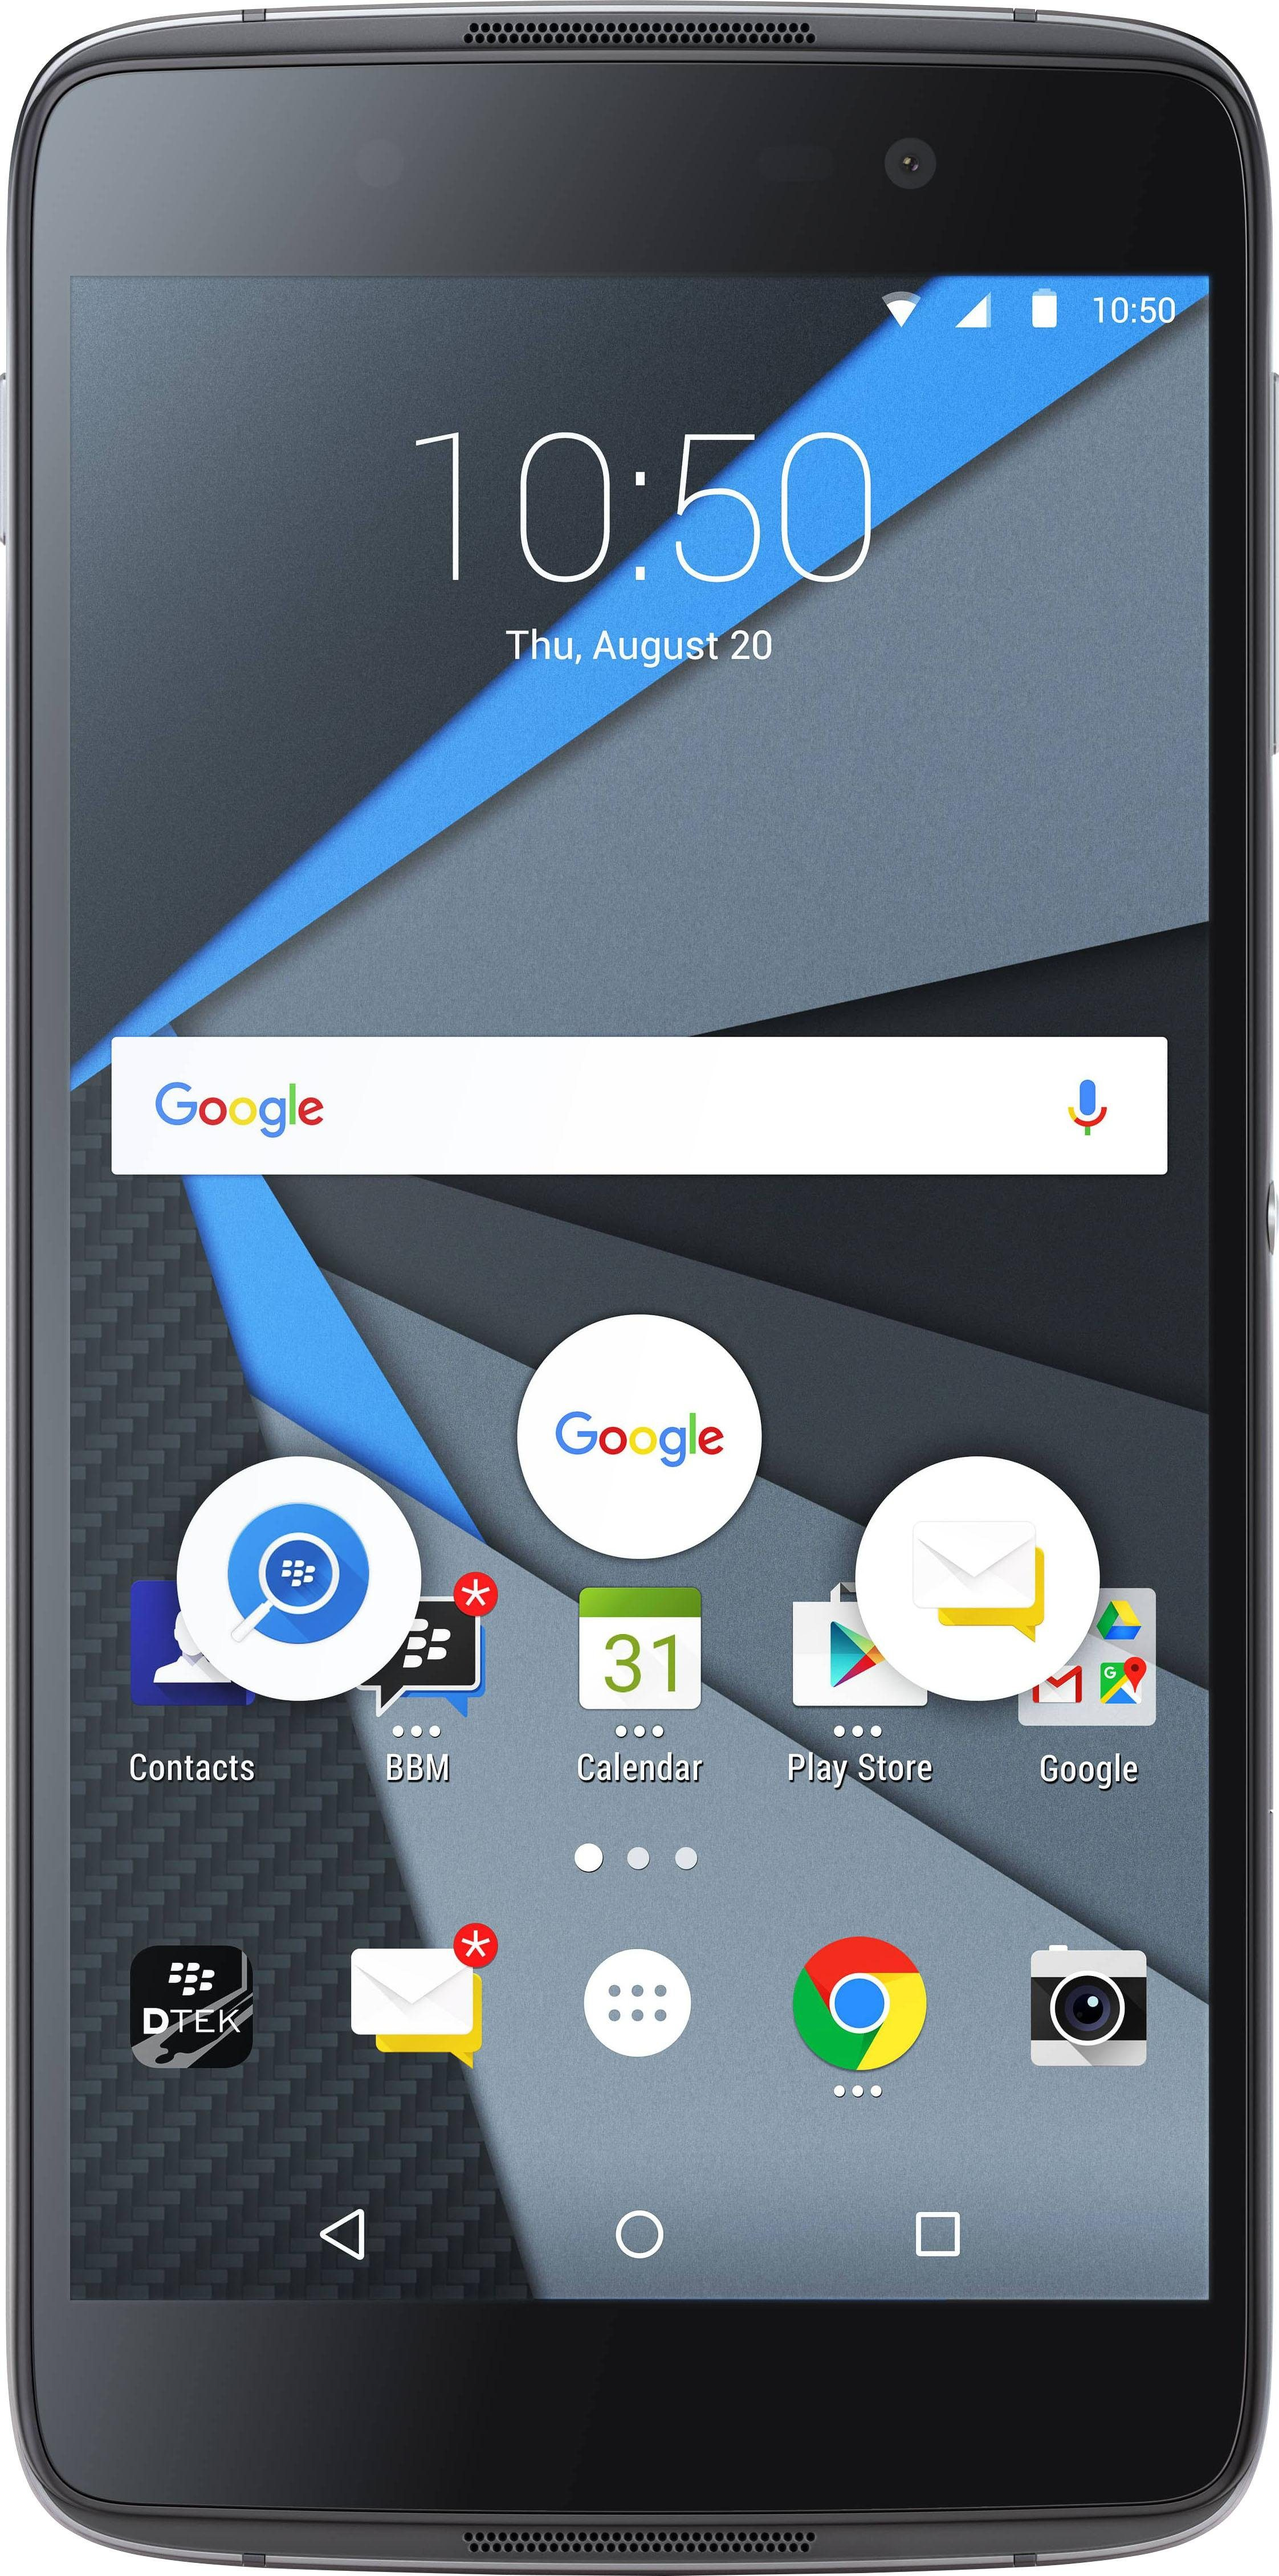 Blackberry DTEK 50 Smartphone, 13,2 cm (5,2 Zoll) Display, LTE (4G), Android 6.0 (Marshmallow)